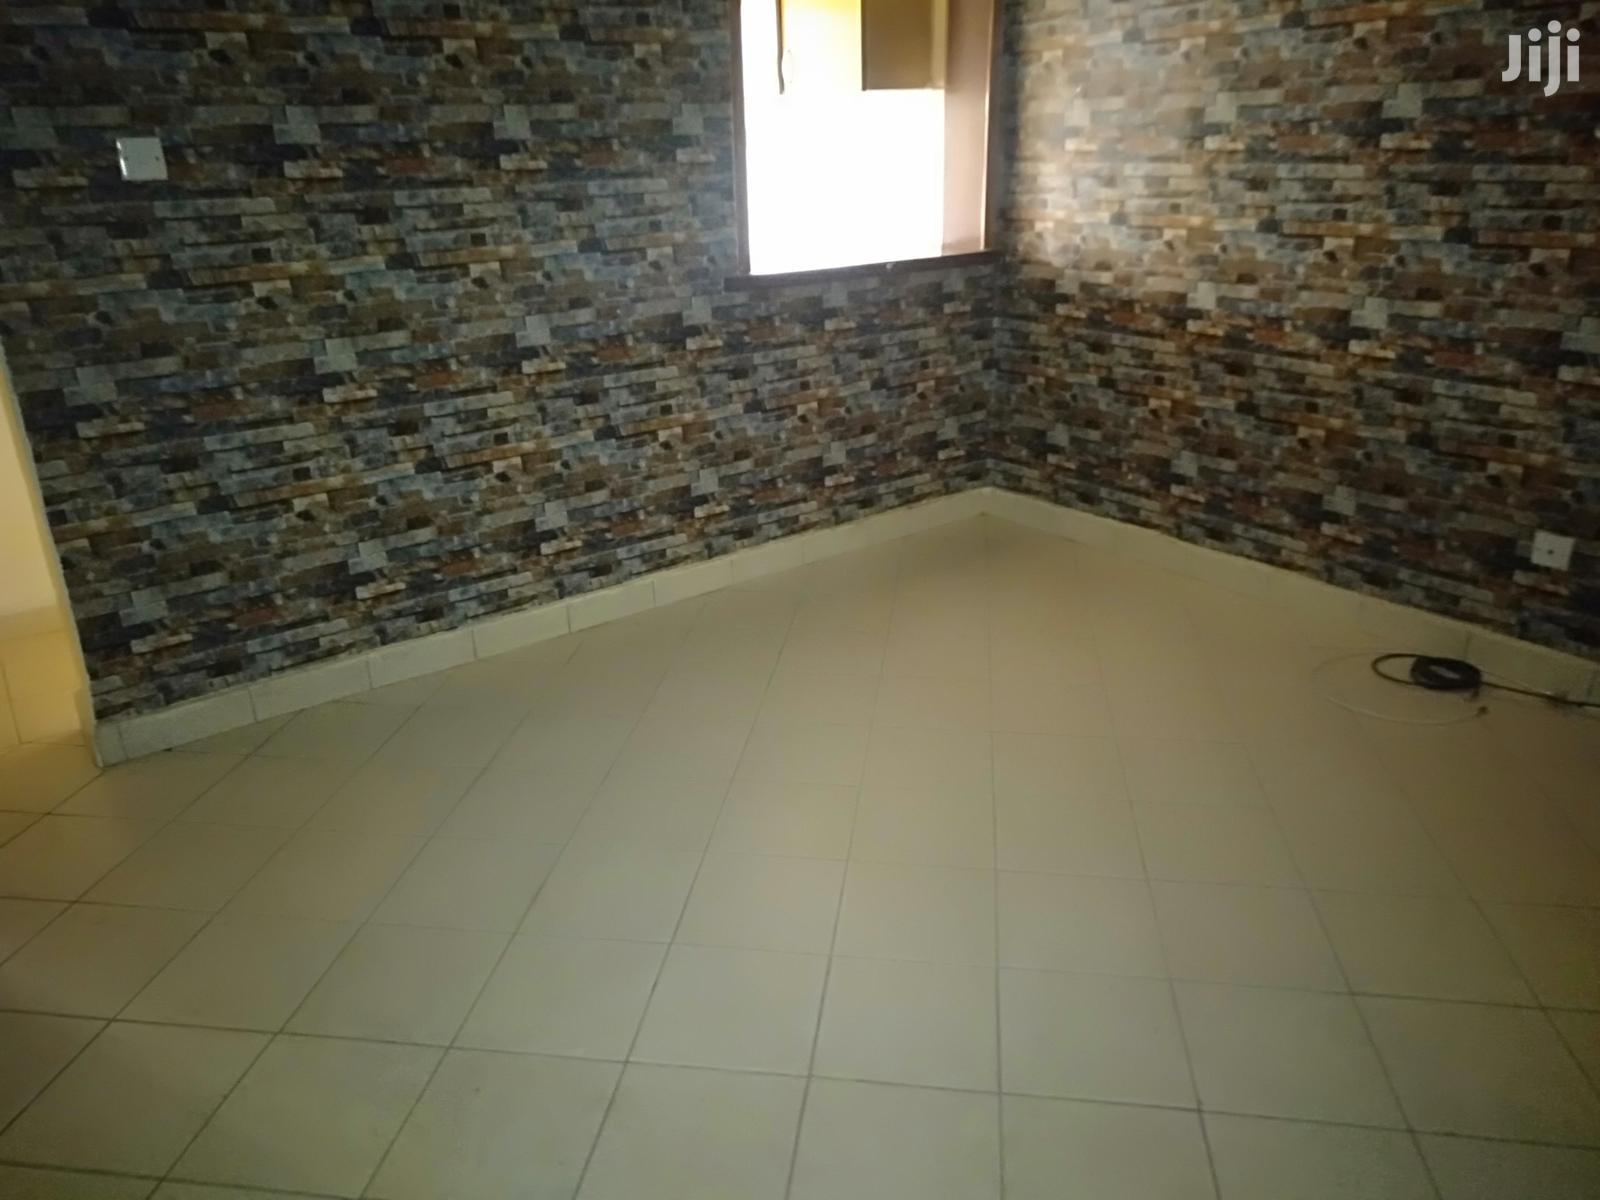 Executive 2br Apartment To Let In Jamuhuri